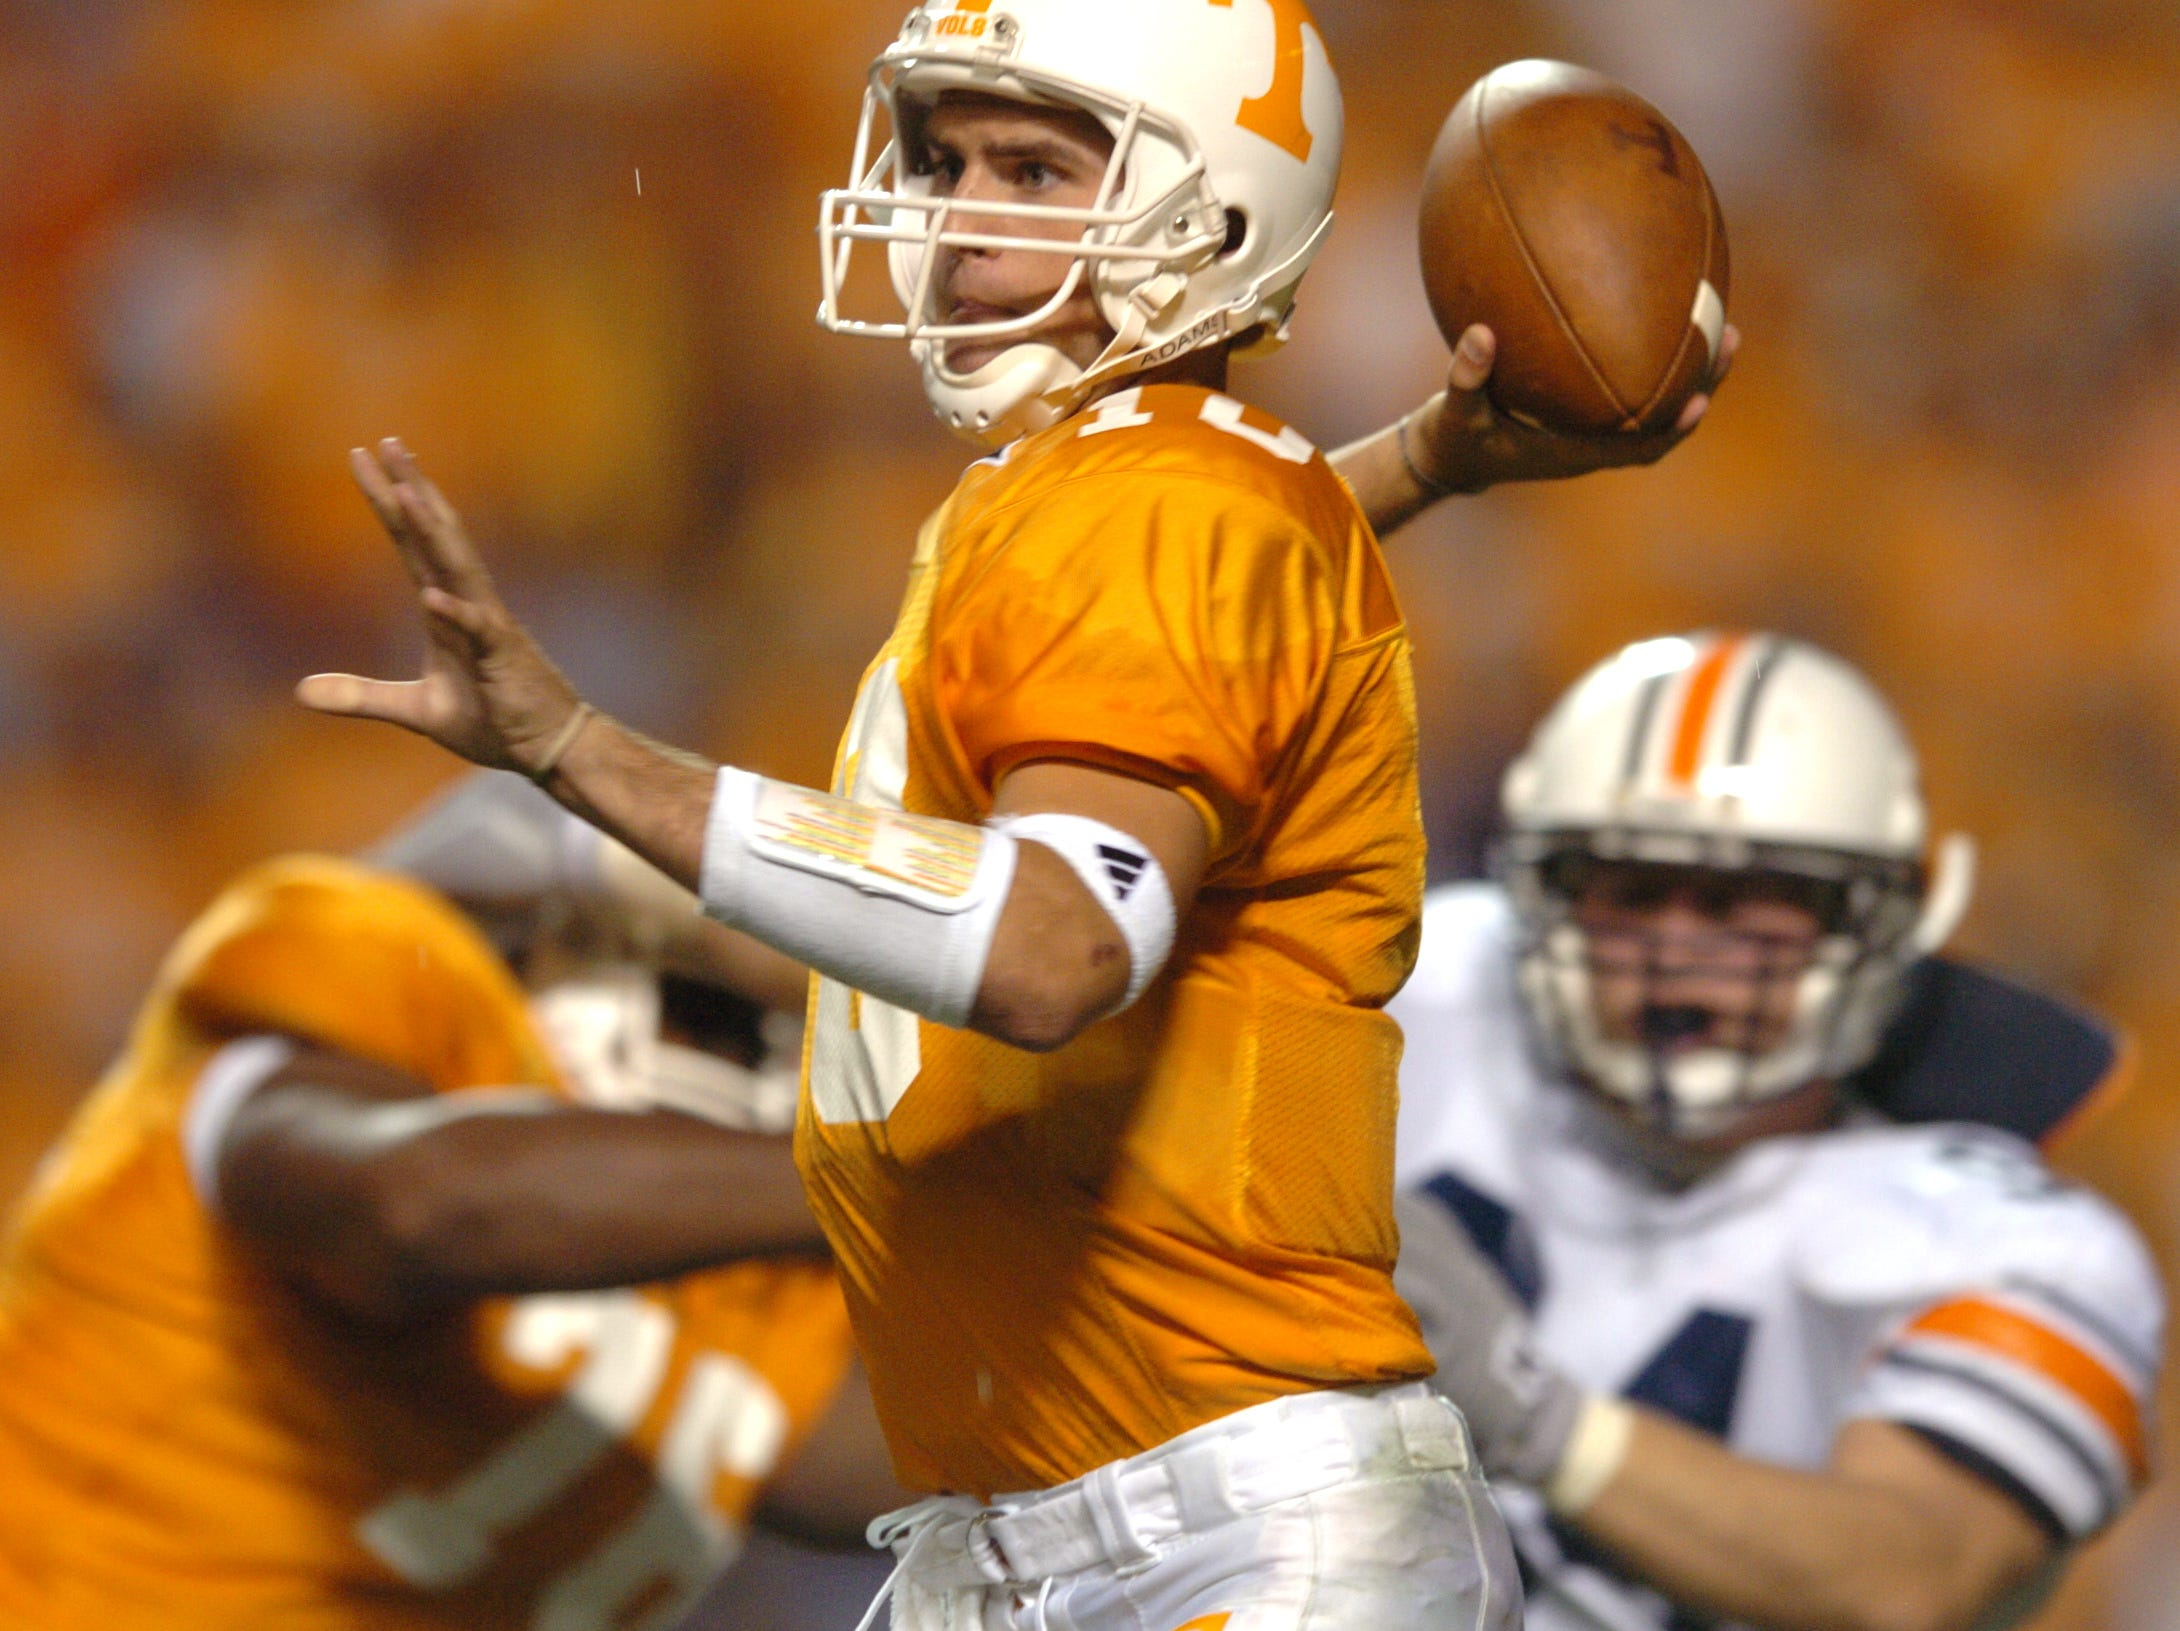 UT quarterback Erik Ainge looks for a receiver while playing against Auburn. 10/02/2004